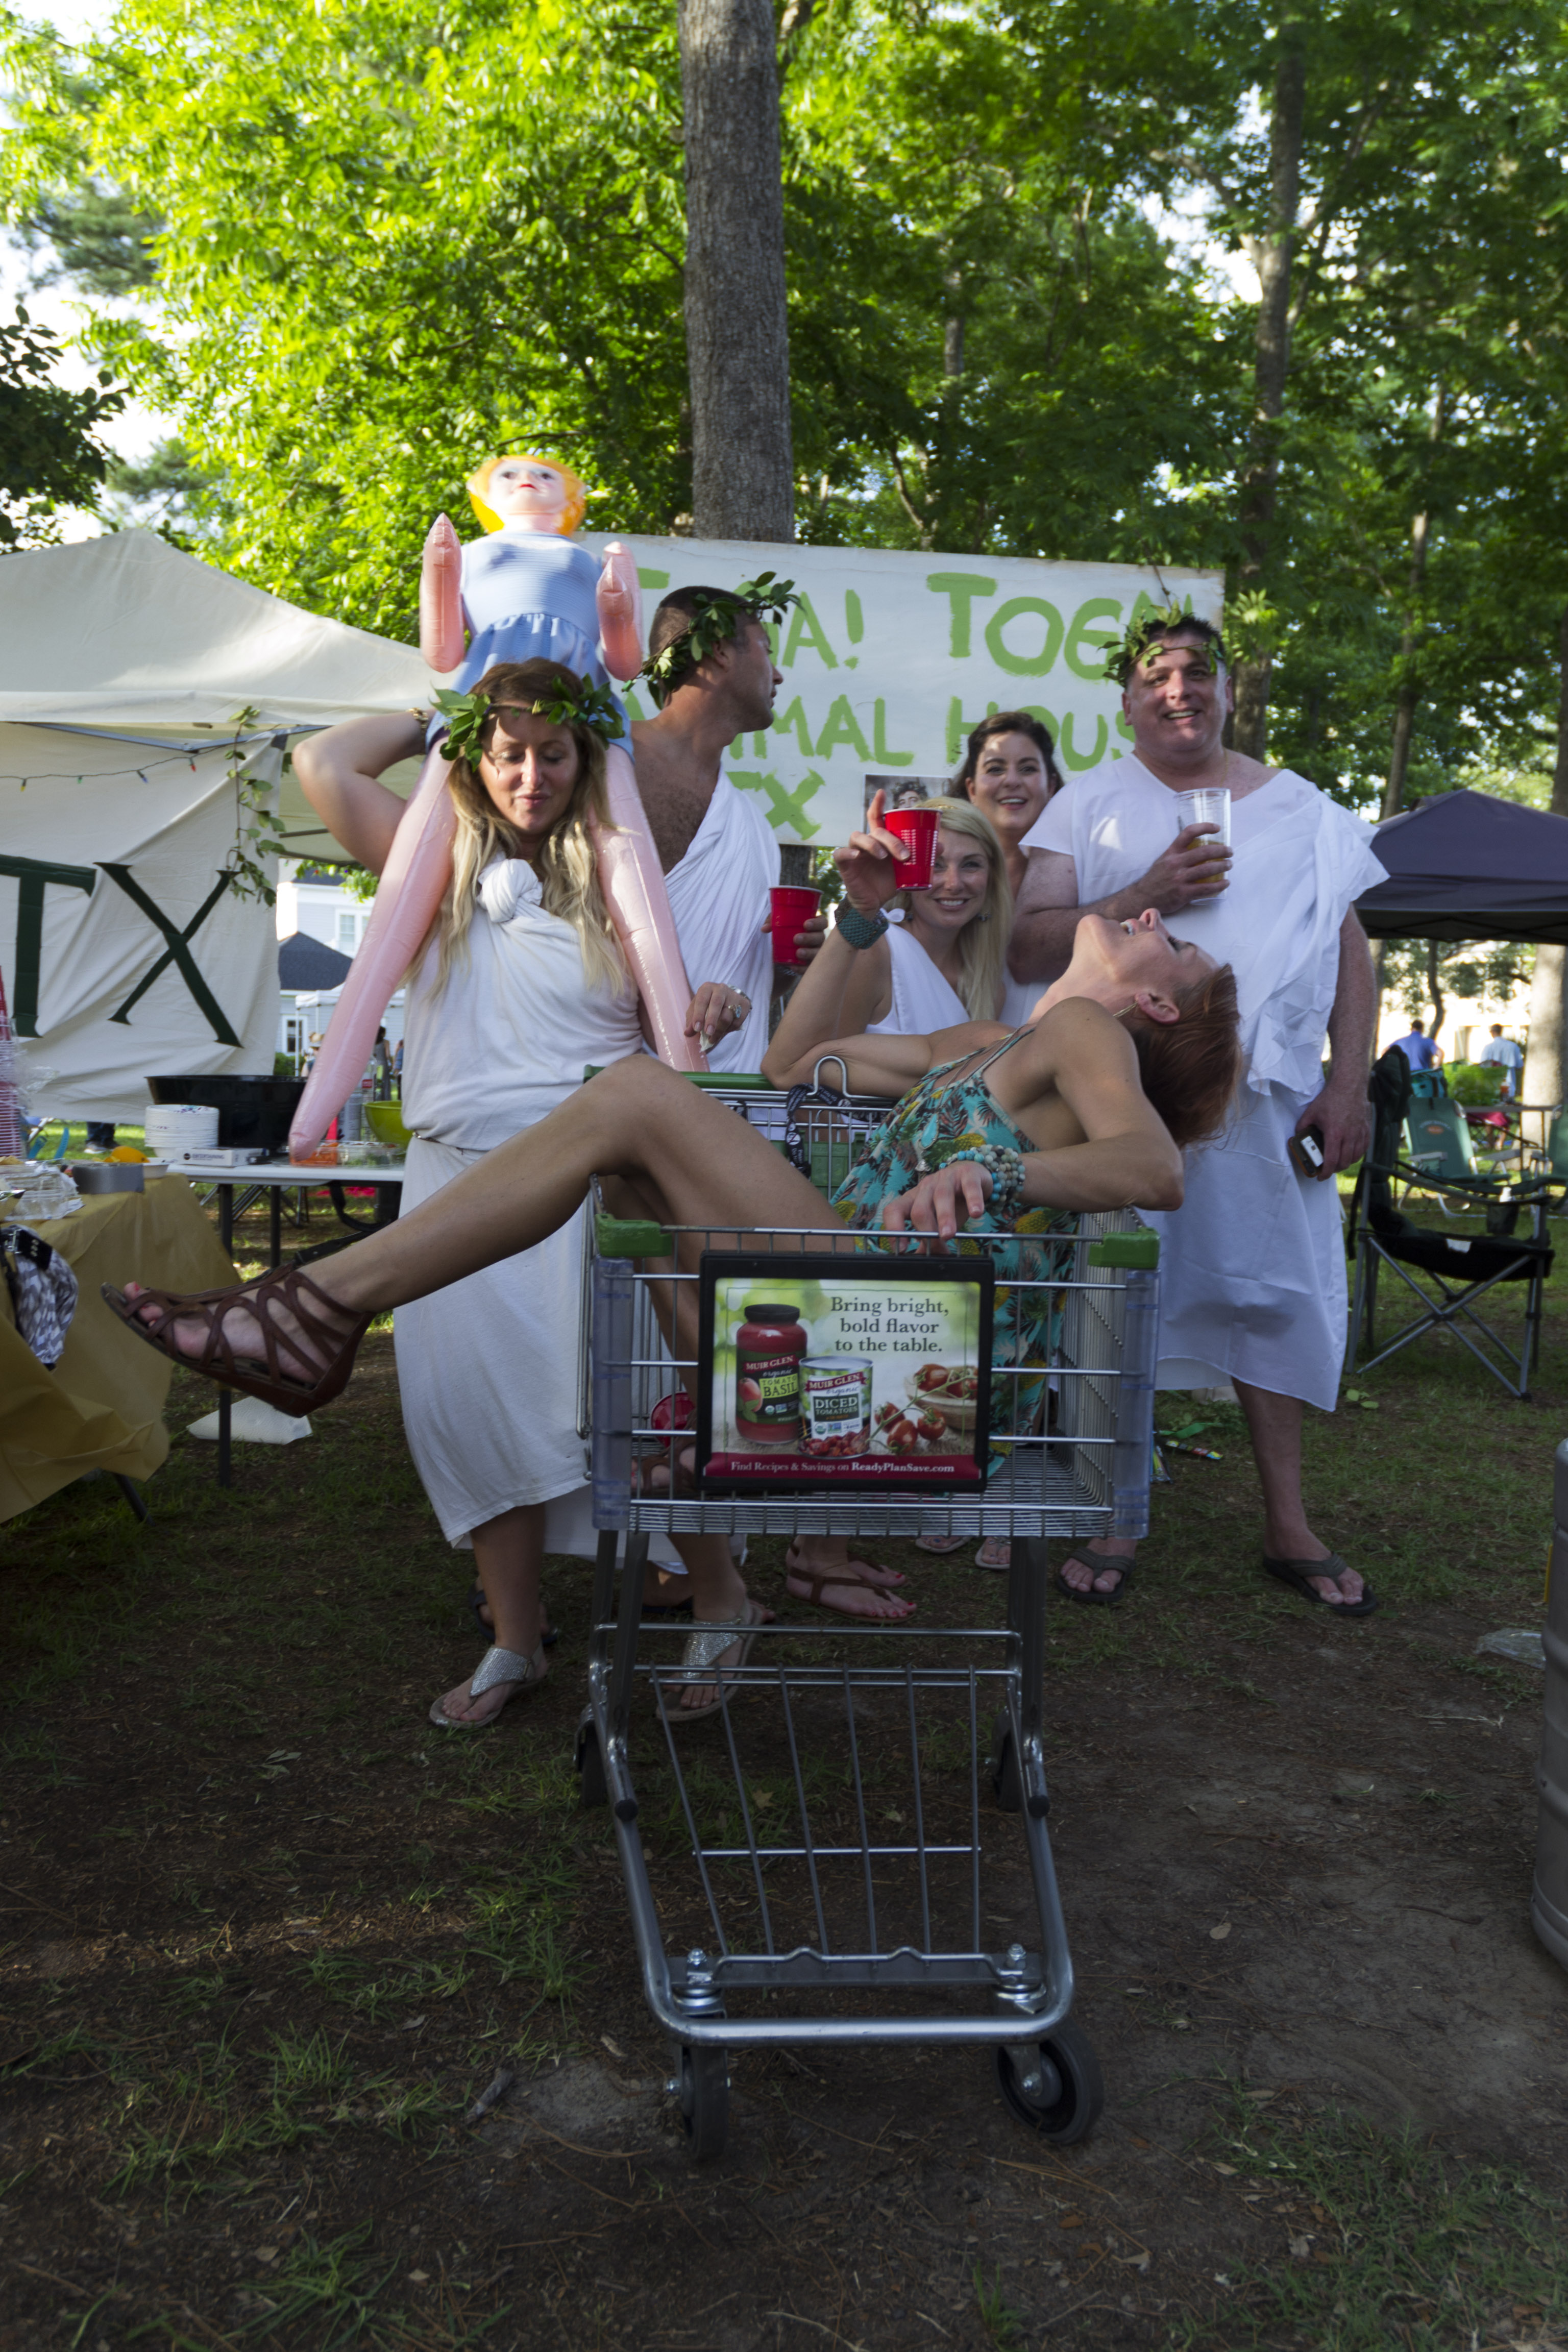 """See if you can guess who they are! """"The Toga Party"""" picnic tent paid homage to the iconic movie """"Animal House."""""""